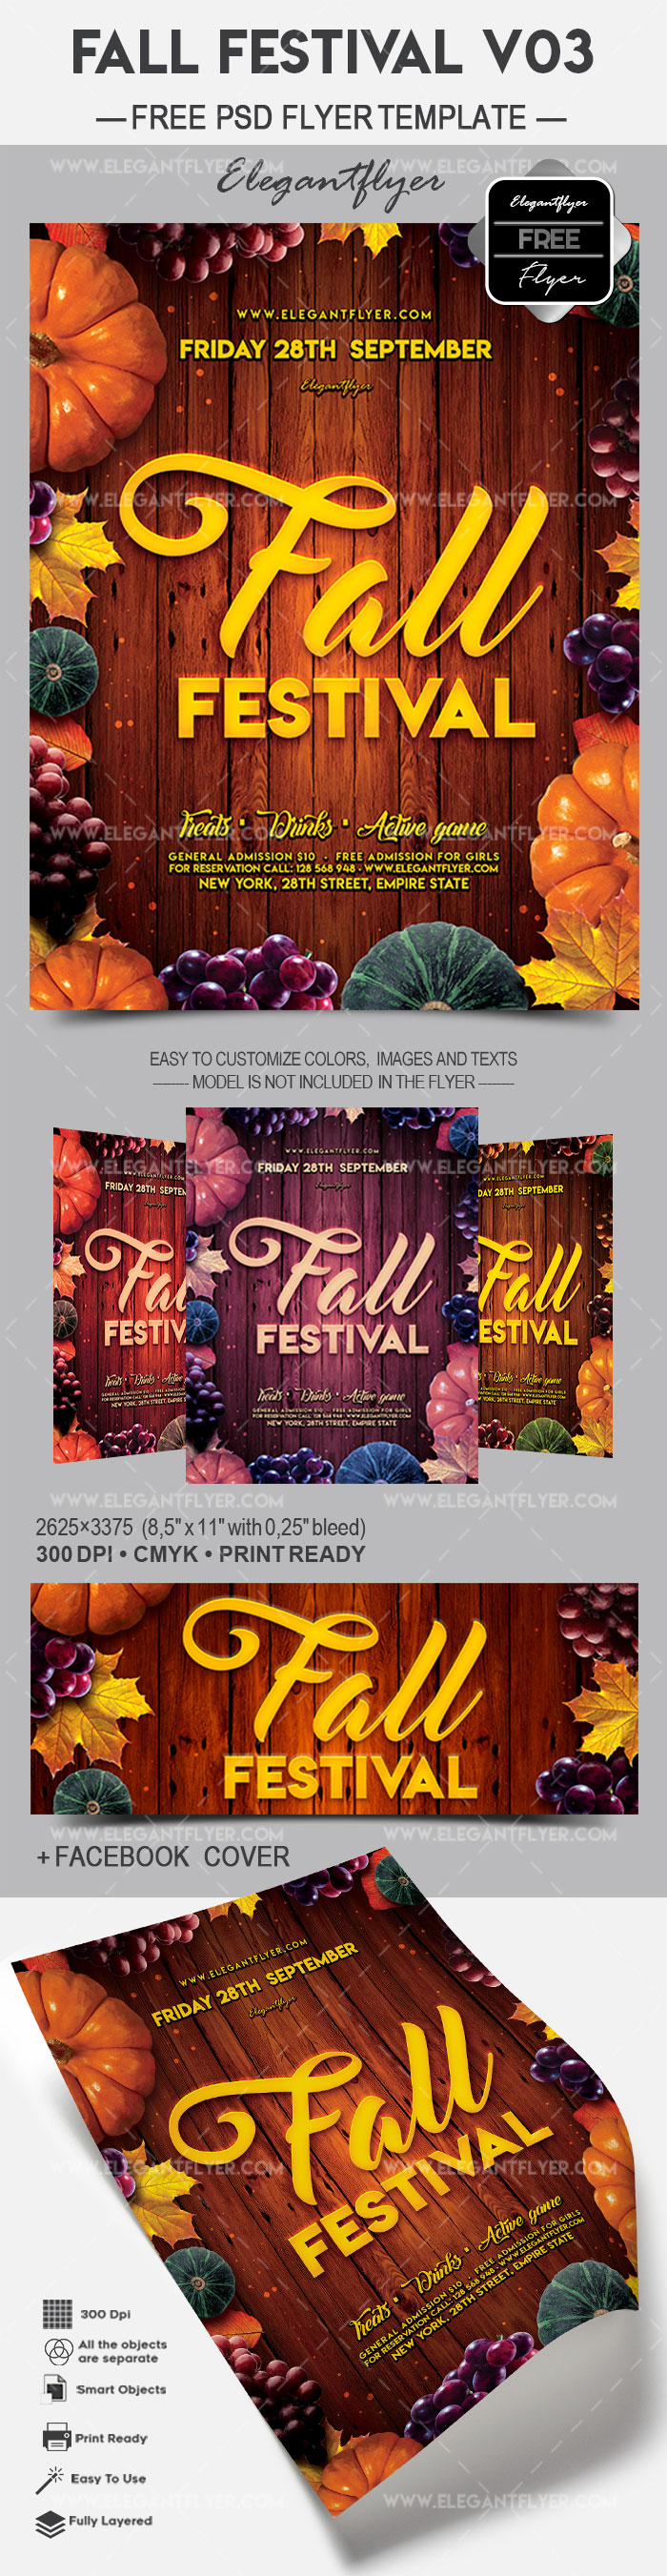 fall festival v03 free flyer psd template by elegantflyer. Black Bedroom Furniture Sets. Home Design Ideas